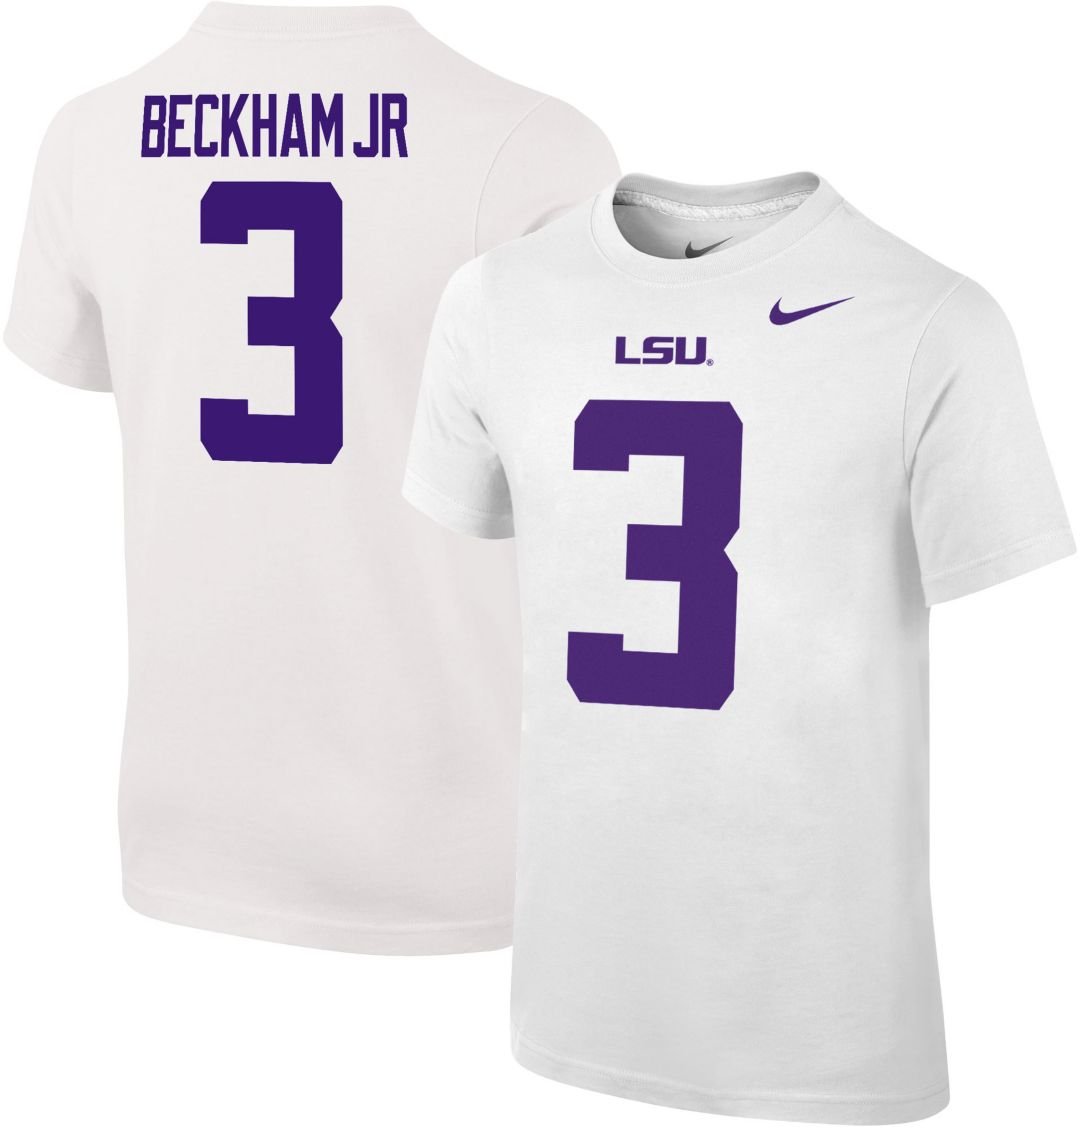 brand new bba99 d0ca4 Nike Youth Odell Beckham Jr. LSU Tigers #3 Cotton Football Jersey White  T-Shirt